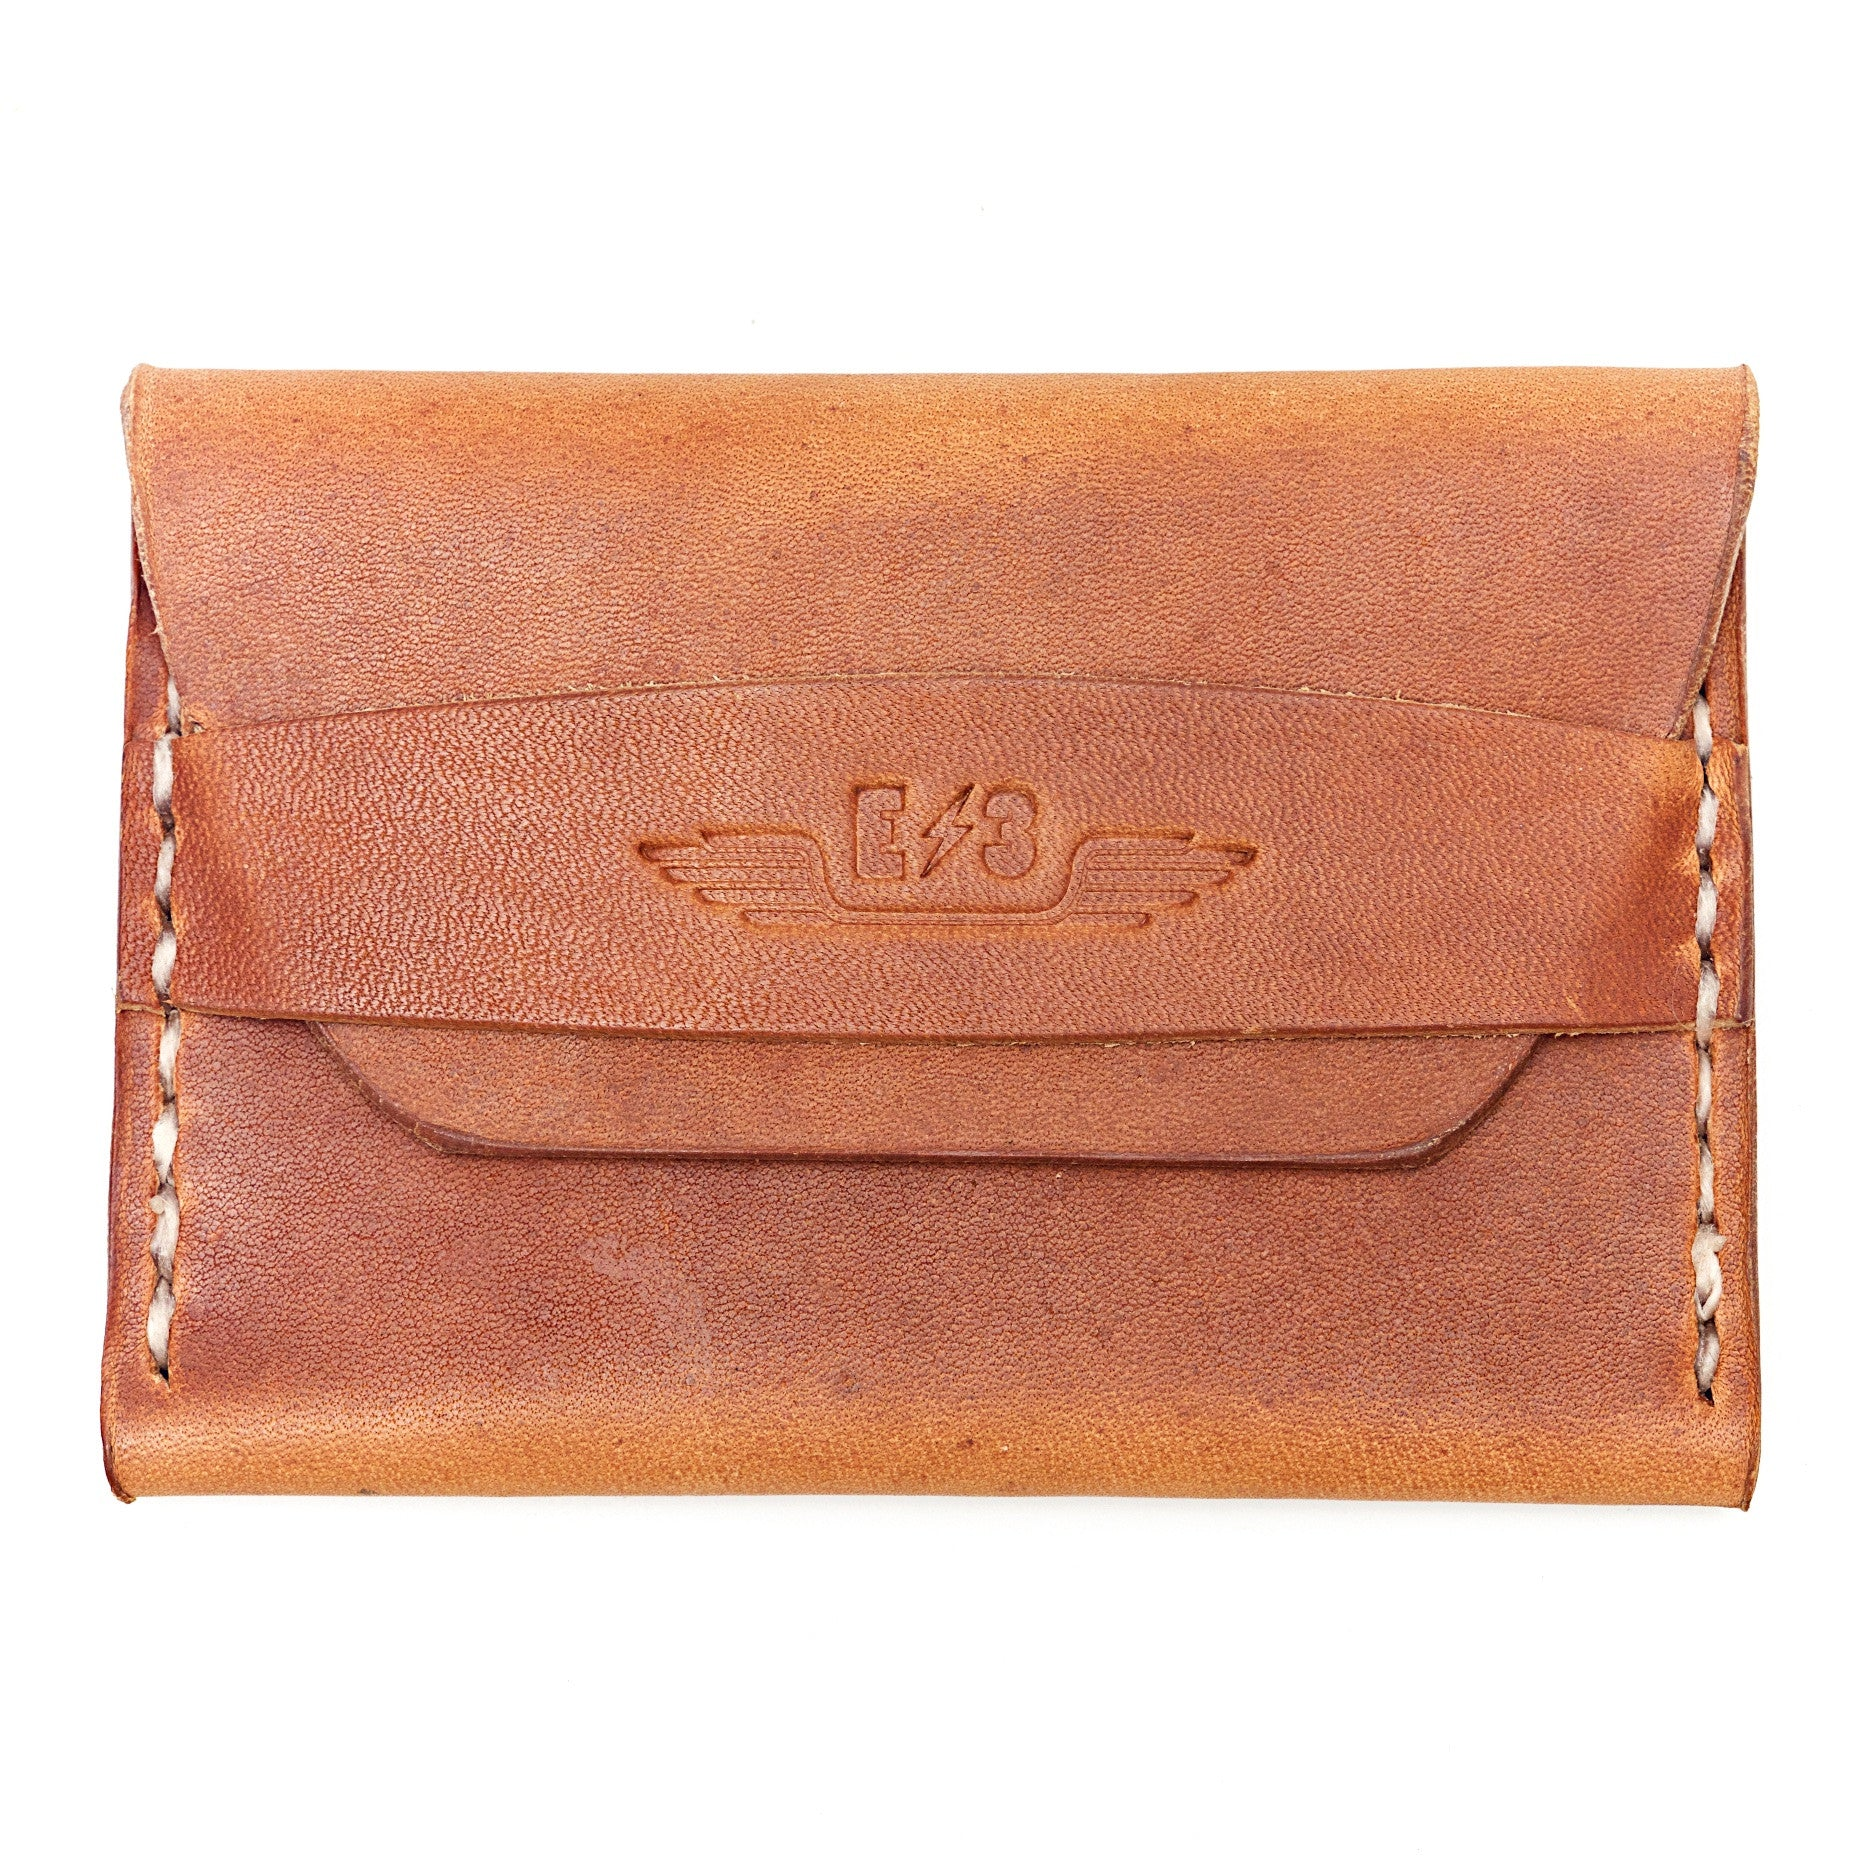 Horween Leather Single Pocket Wallet by E3 Supply Co- English Tan Dublin